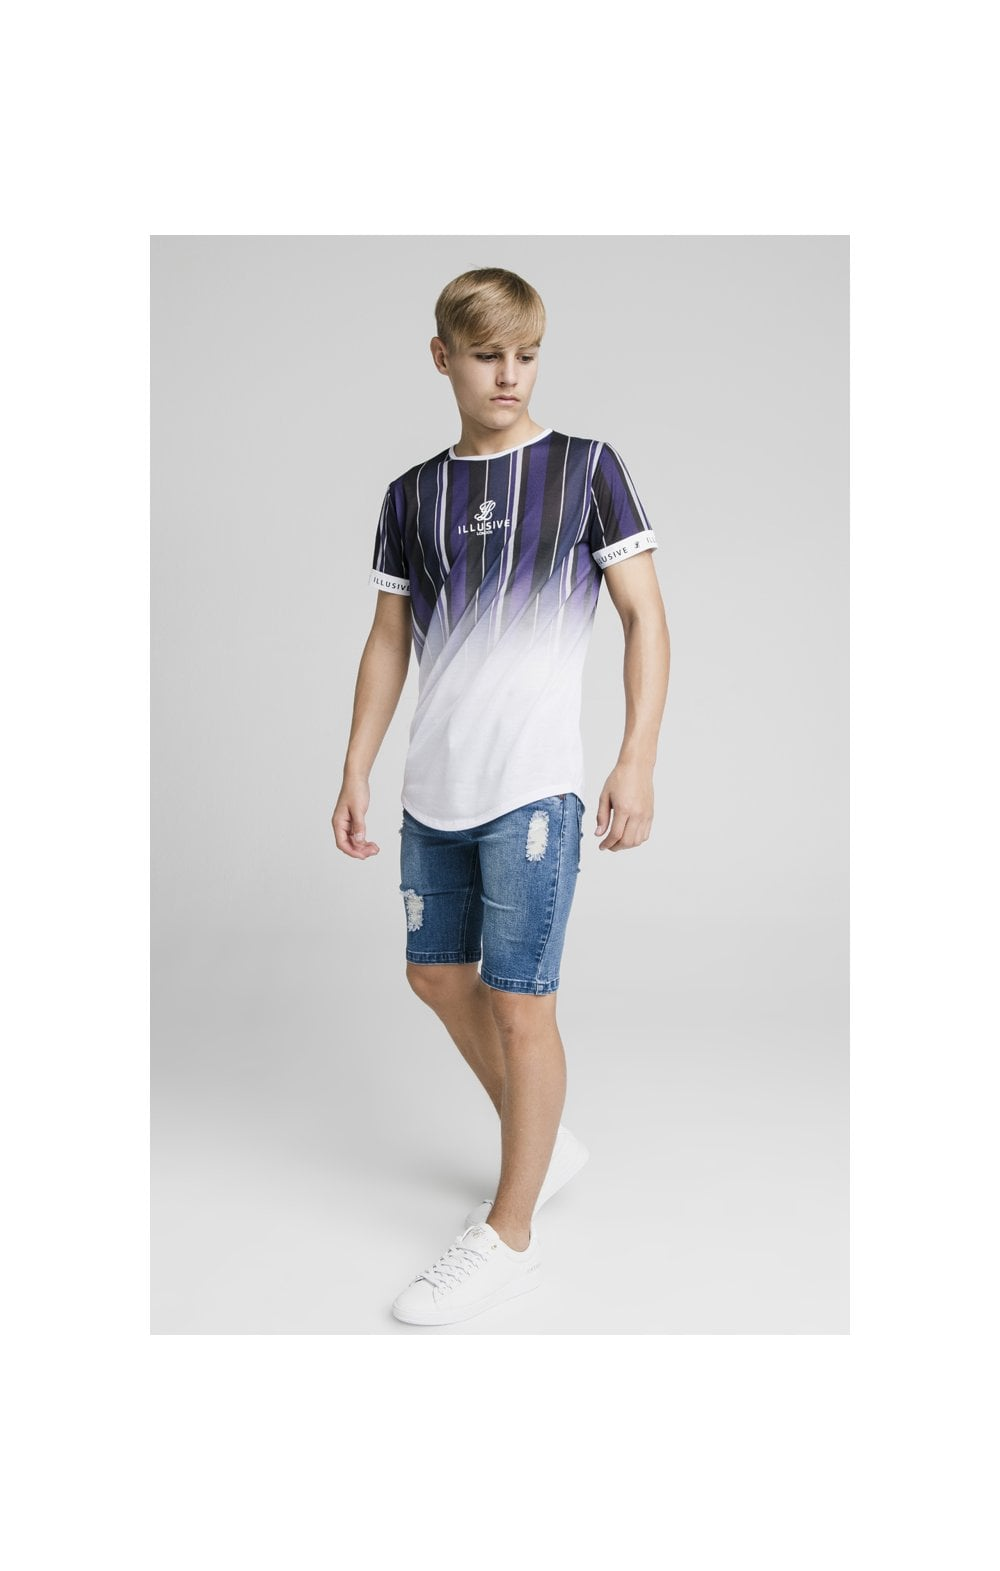 Illusive London Fade Stripe Tech Tee - Navy, Purple, Grey & White (3)